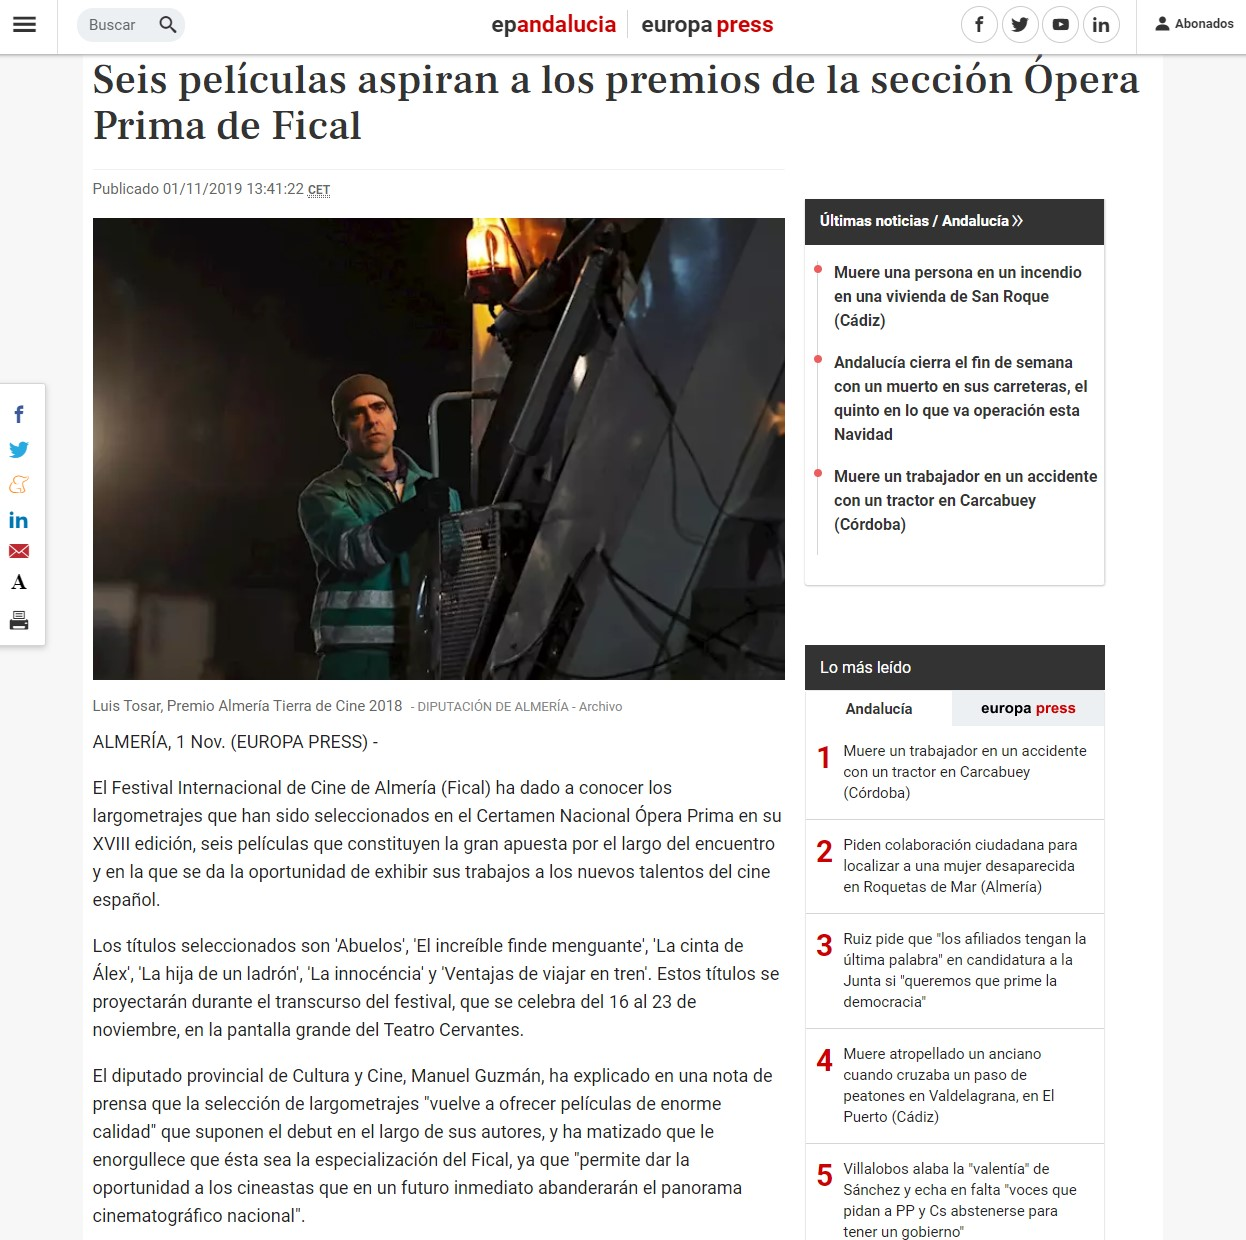 Six films aspire to the awards of the Fical Opera Prima section